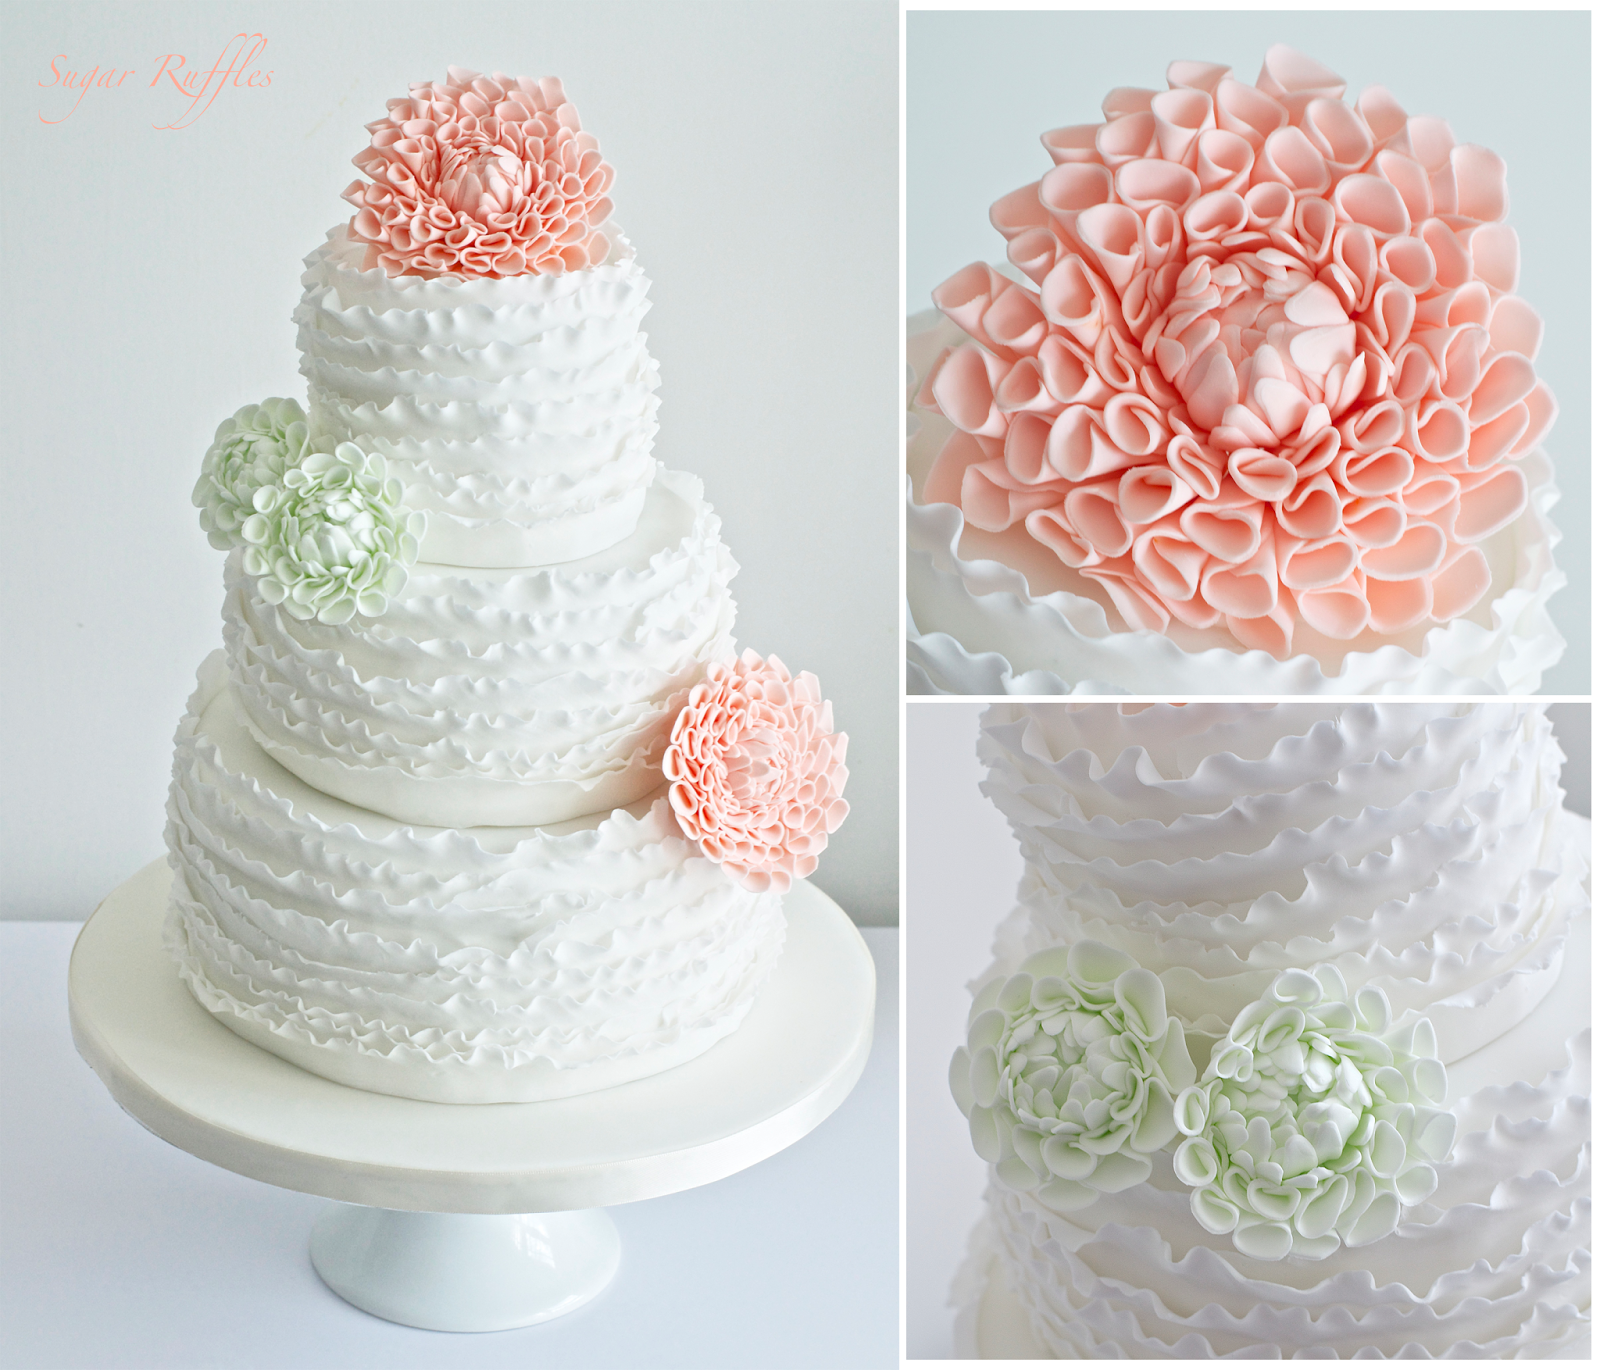 Wedding Flowers Cumbria: Sugar Ruffles, Elegant Wedding Cakes. Barrow In Furness